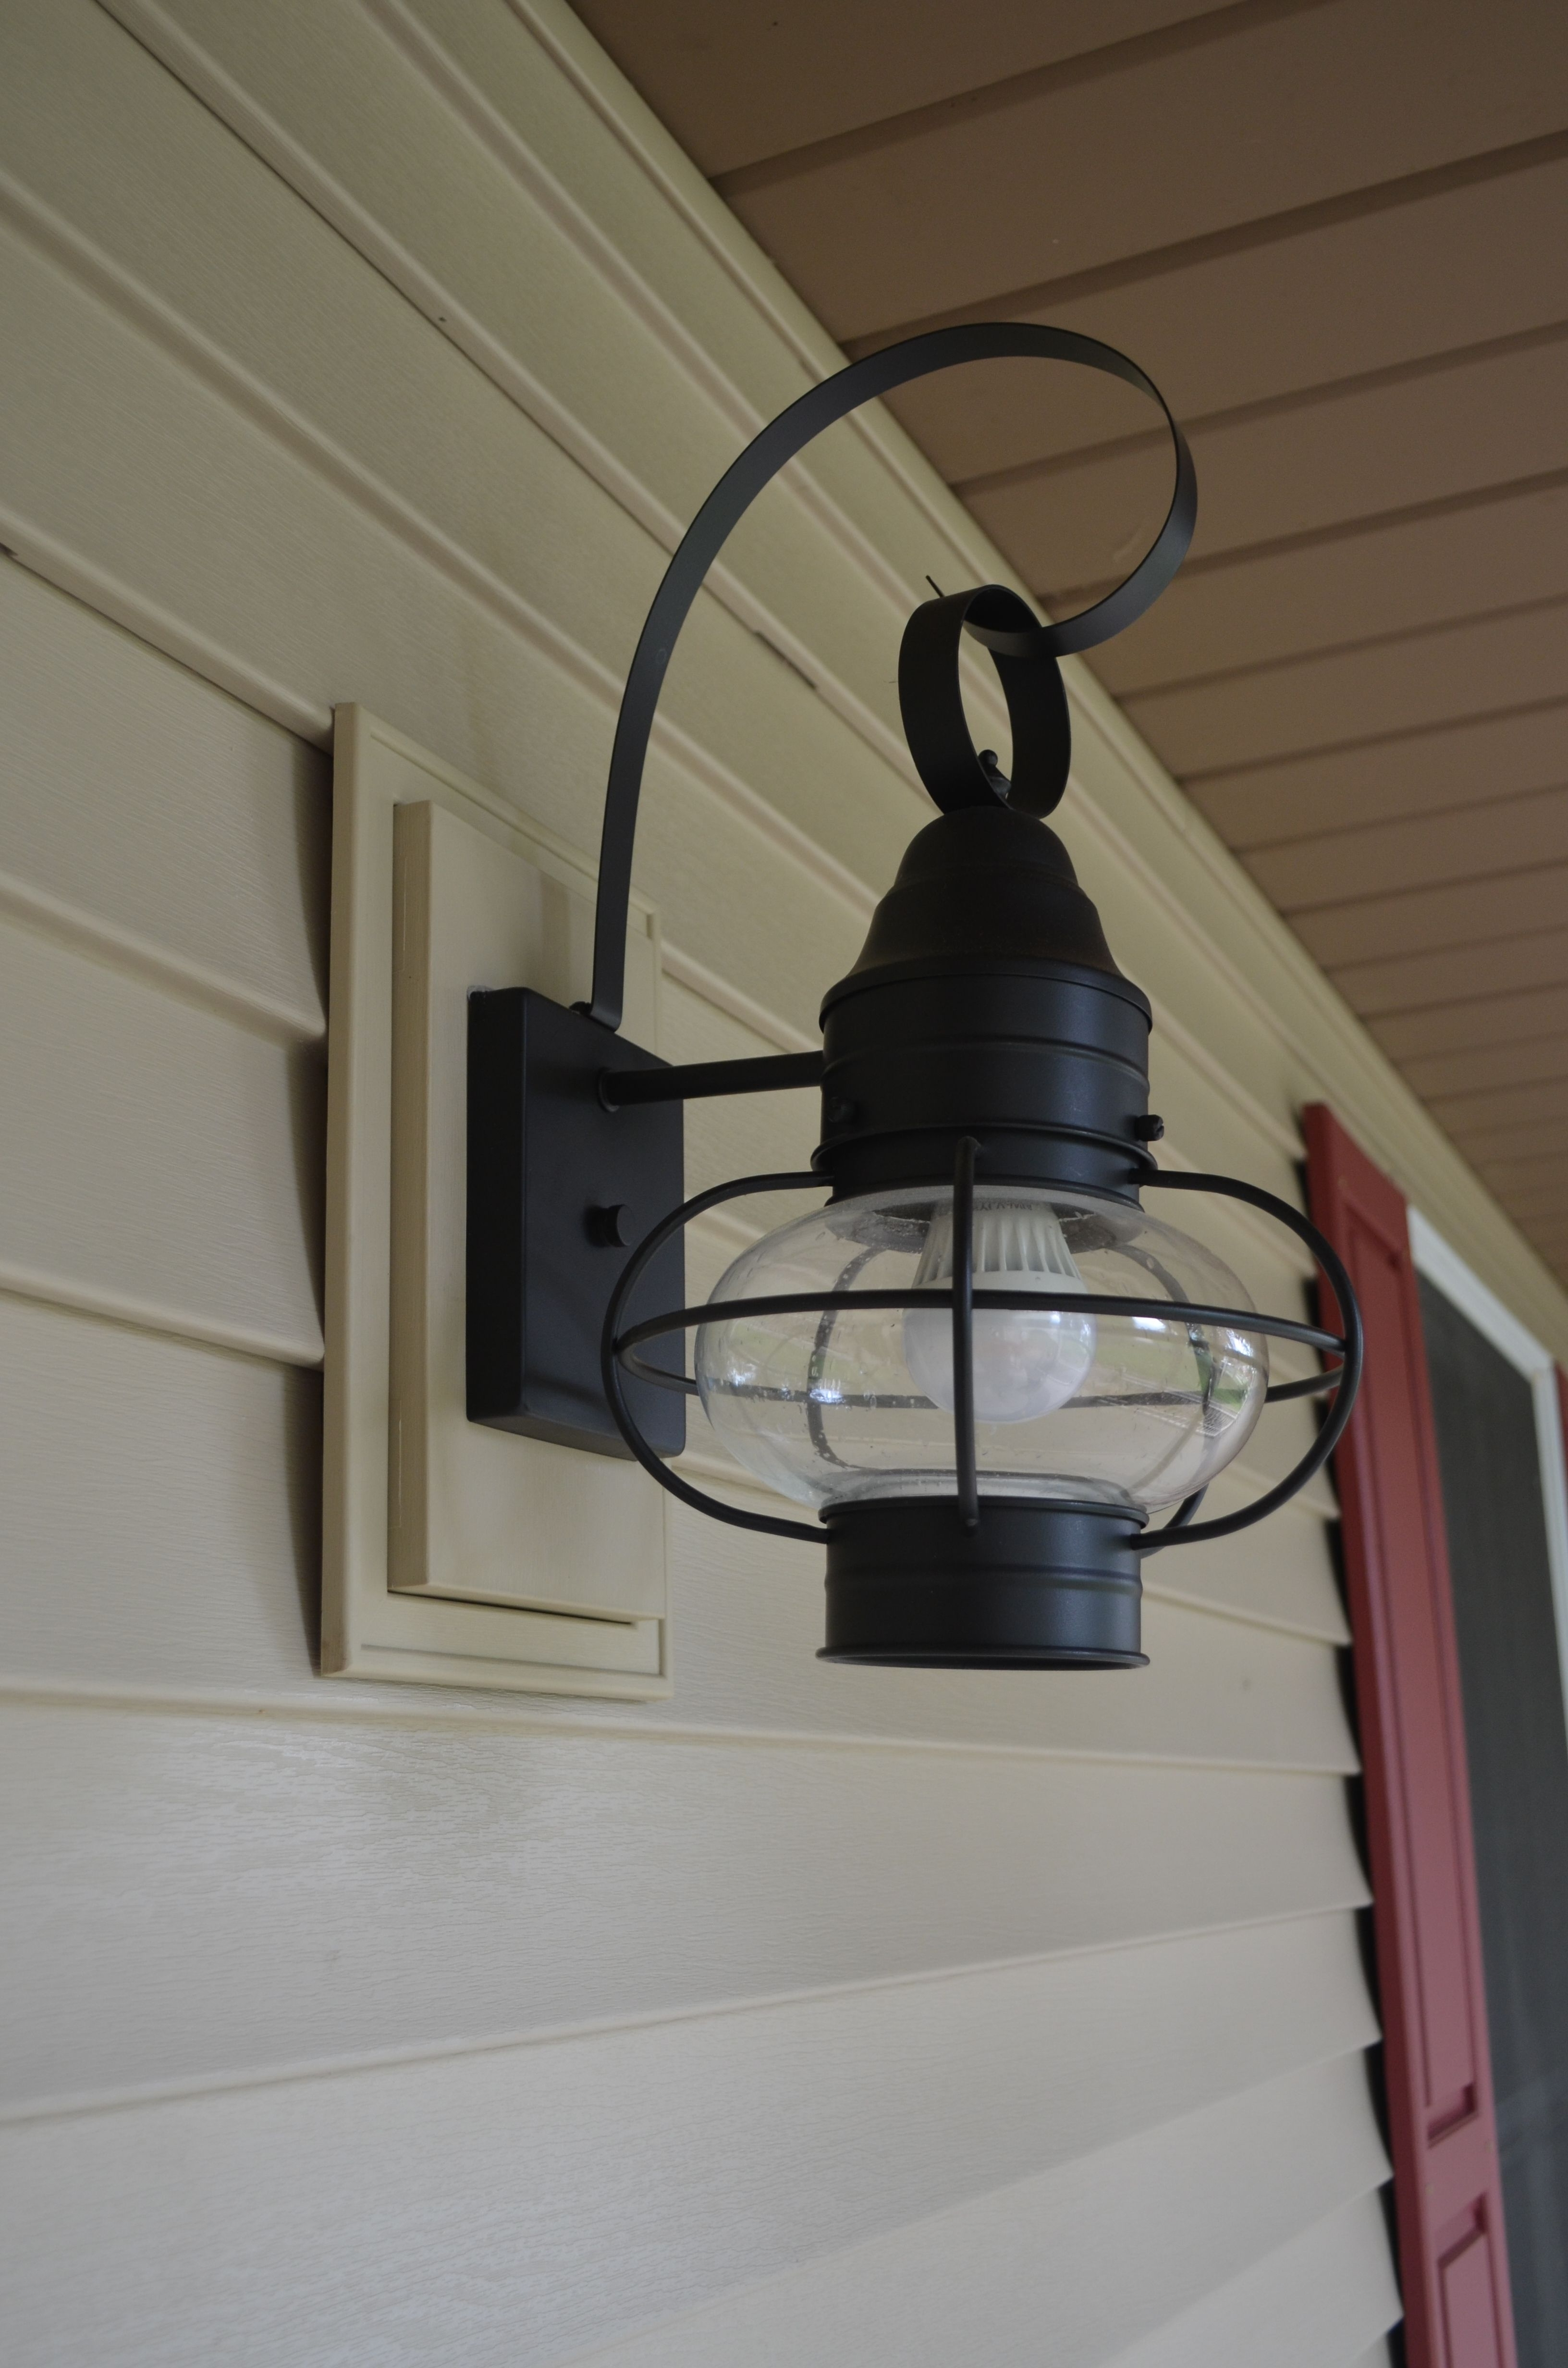 Hanging Outdoor Lights On Vinyl Siding Intended For Well Known Norandex Sterling Deluxe Vinyl Siding In Sandstone With Matching (View 2 of 20)